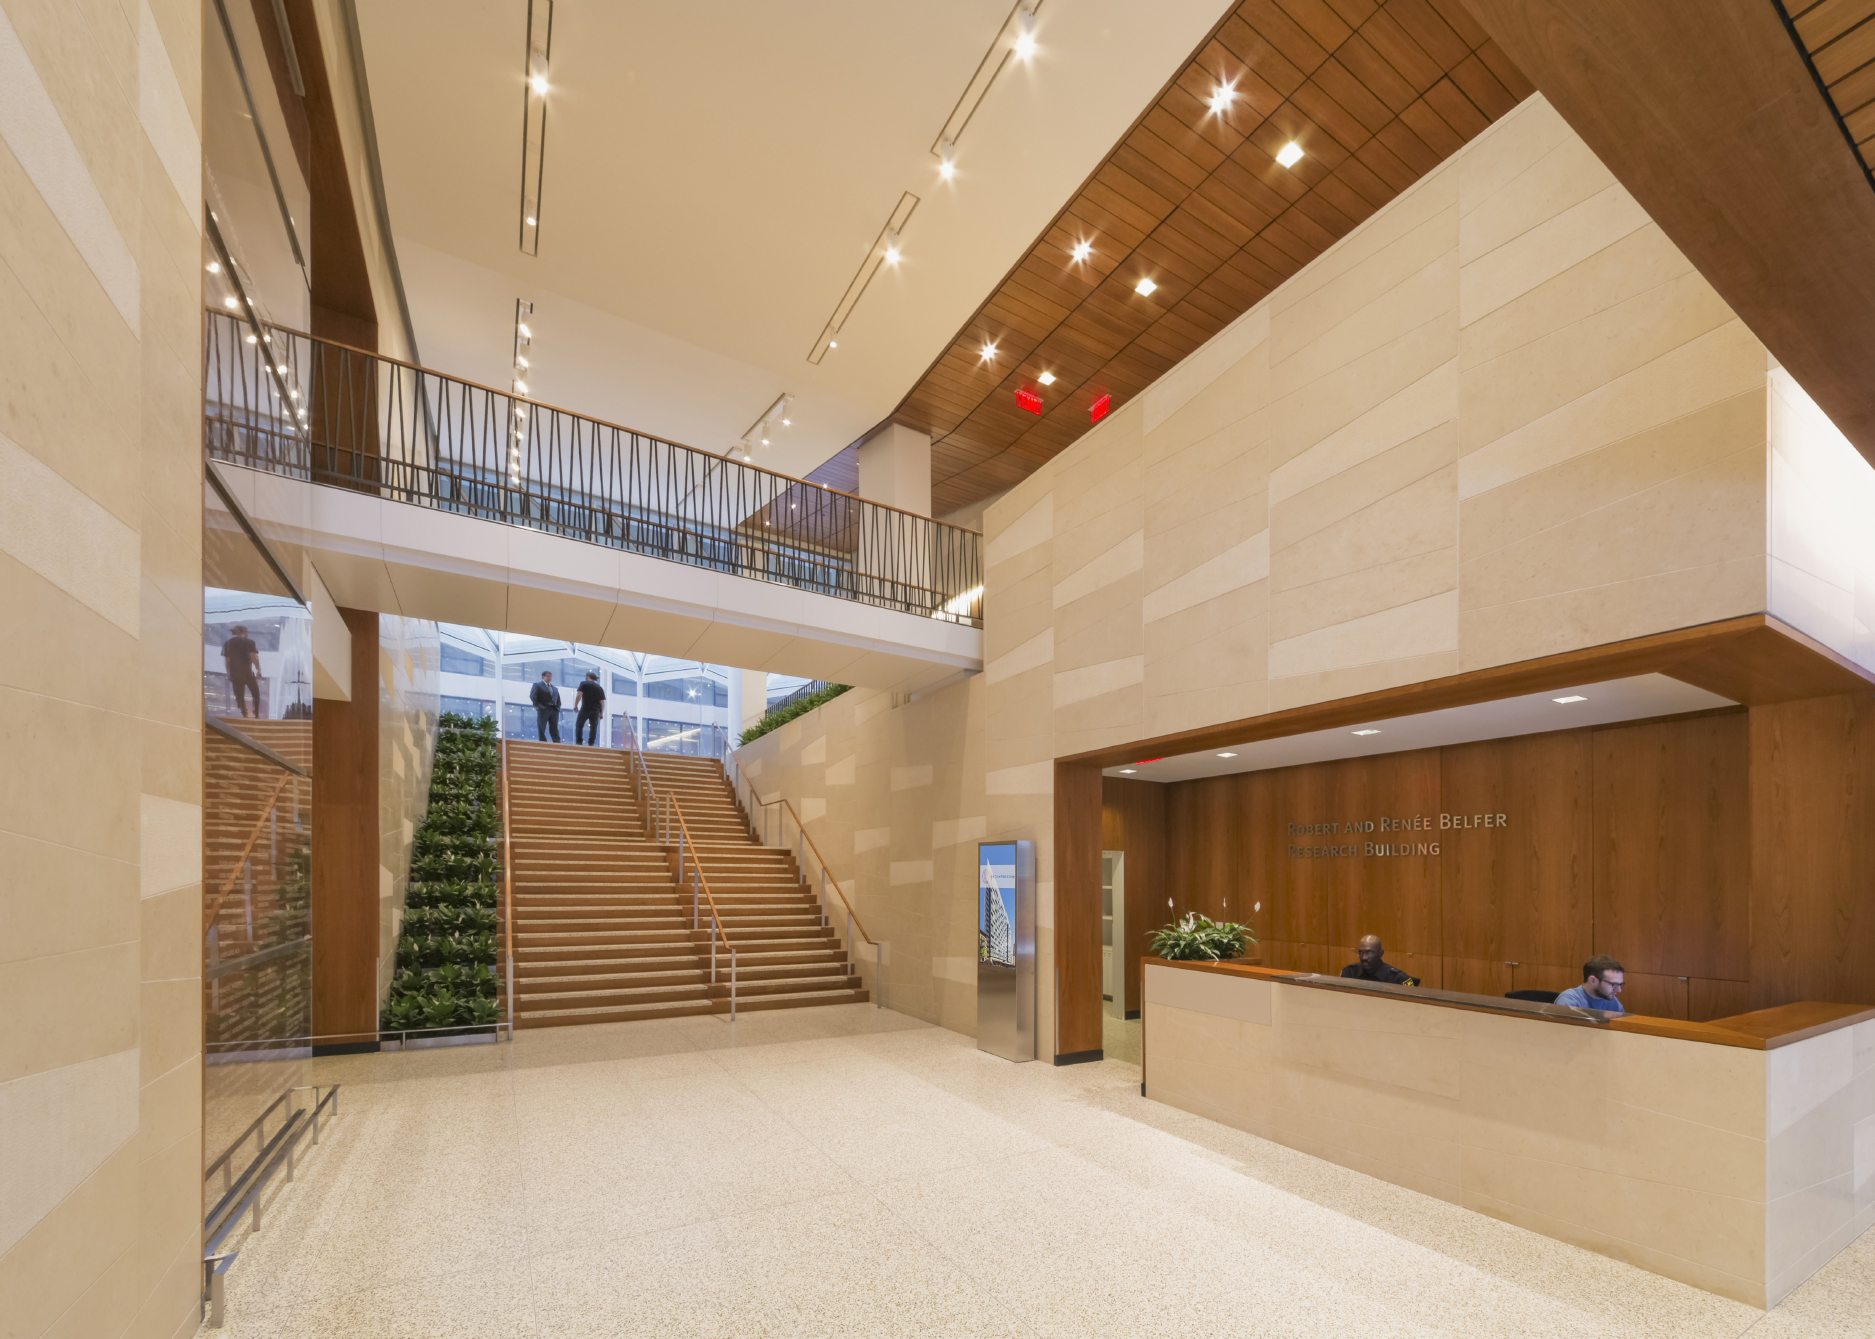 The Belfer Research Building's lobby